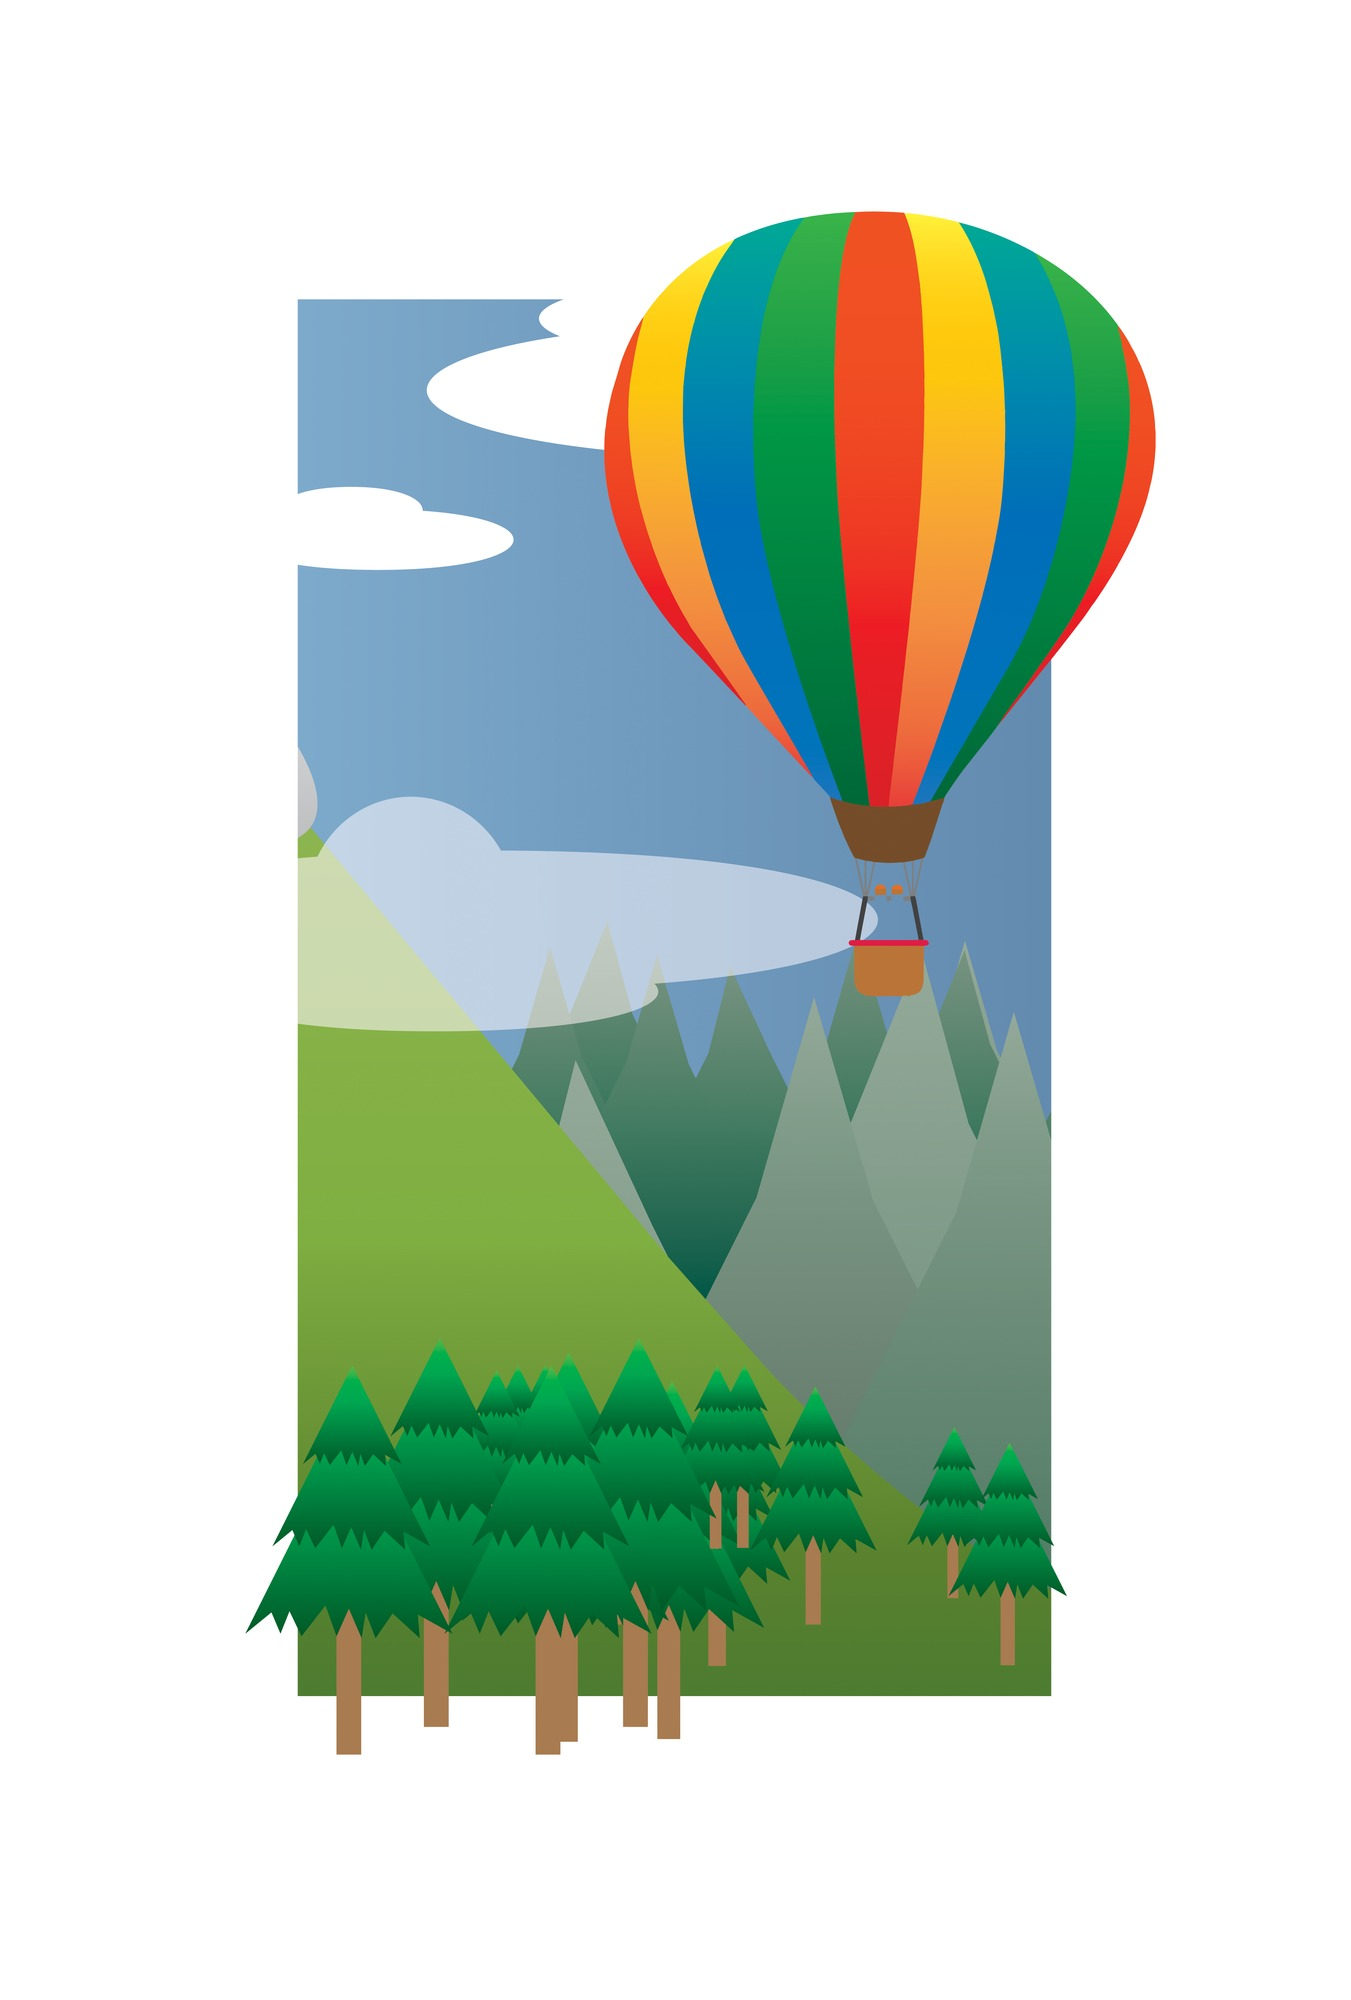 1351x2000 Balloon Ride in the Sky (2013) Wallpaper Mural by TPI Wallsauce